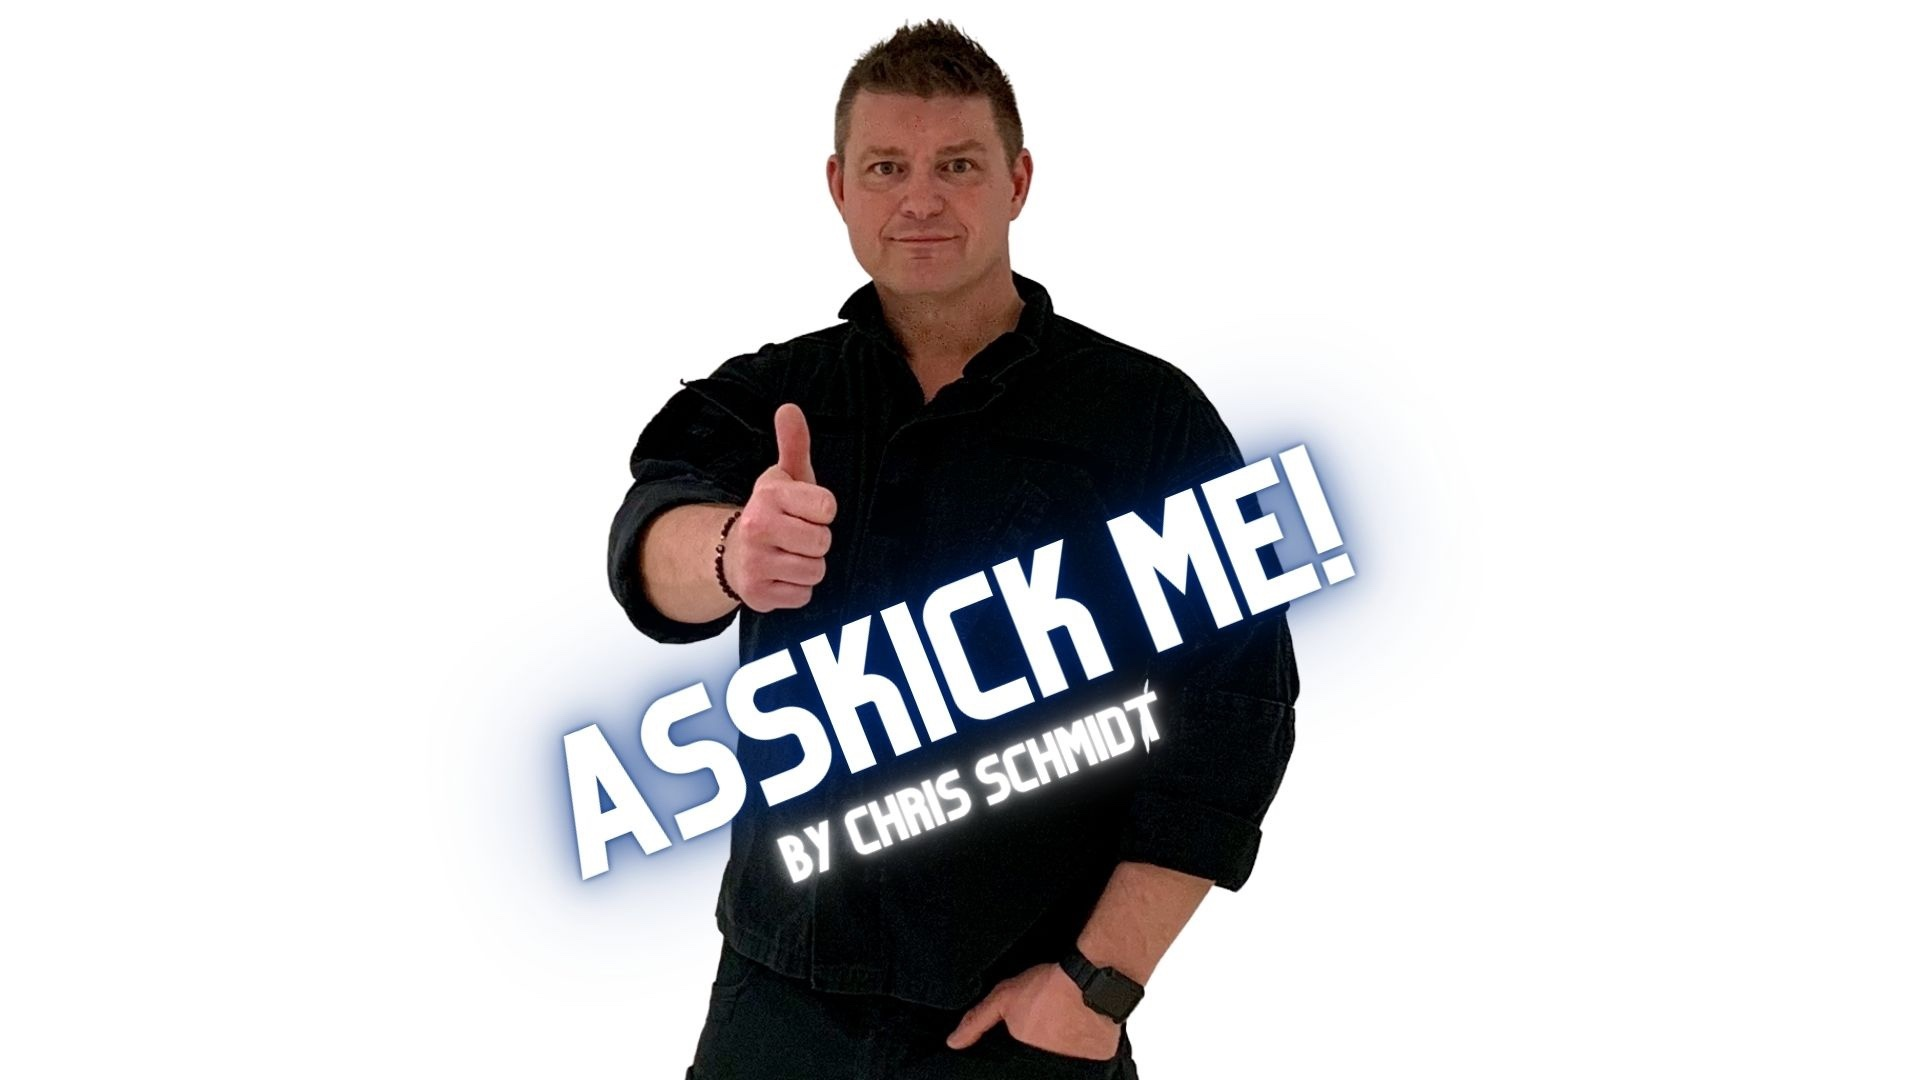 Asskick Me! by Chris Schmidt